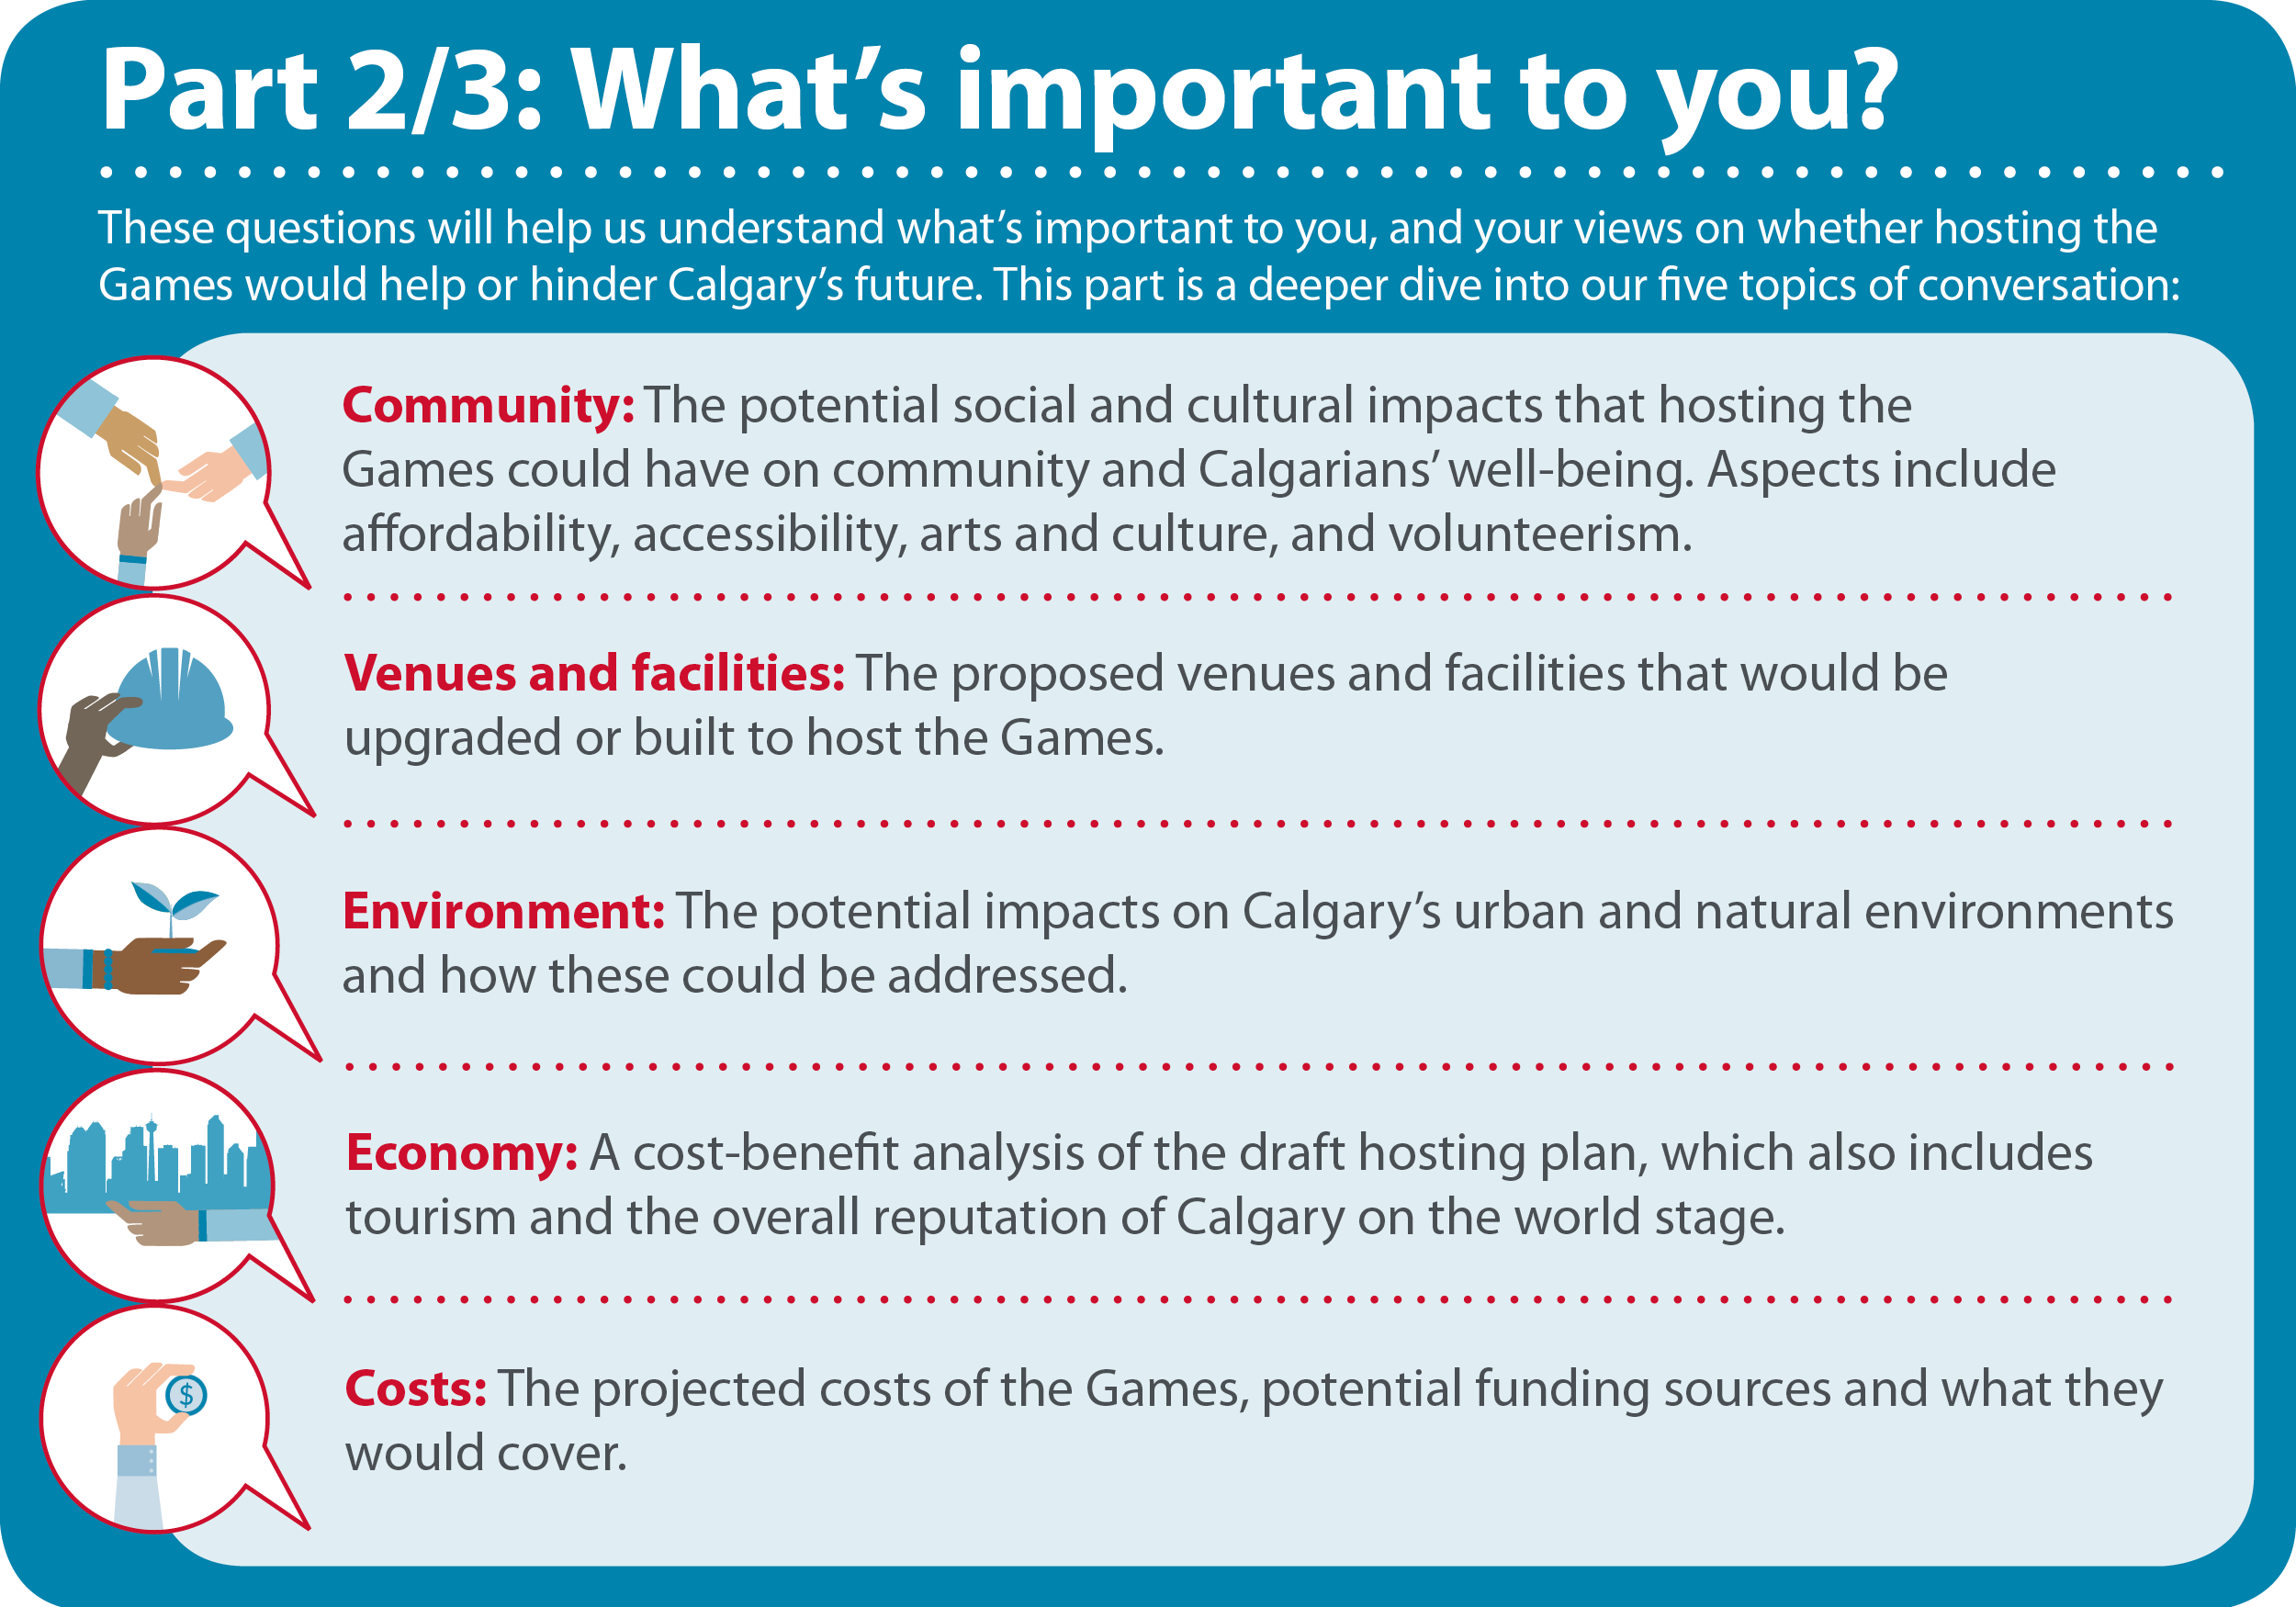 2026 Olympic And Paralympic Winter Games Bid Engagement Engage Plan B Electrical Whistler Part 2 3 These Questions Will Help Us Understand Whats Important To You